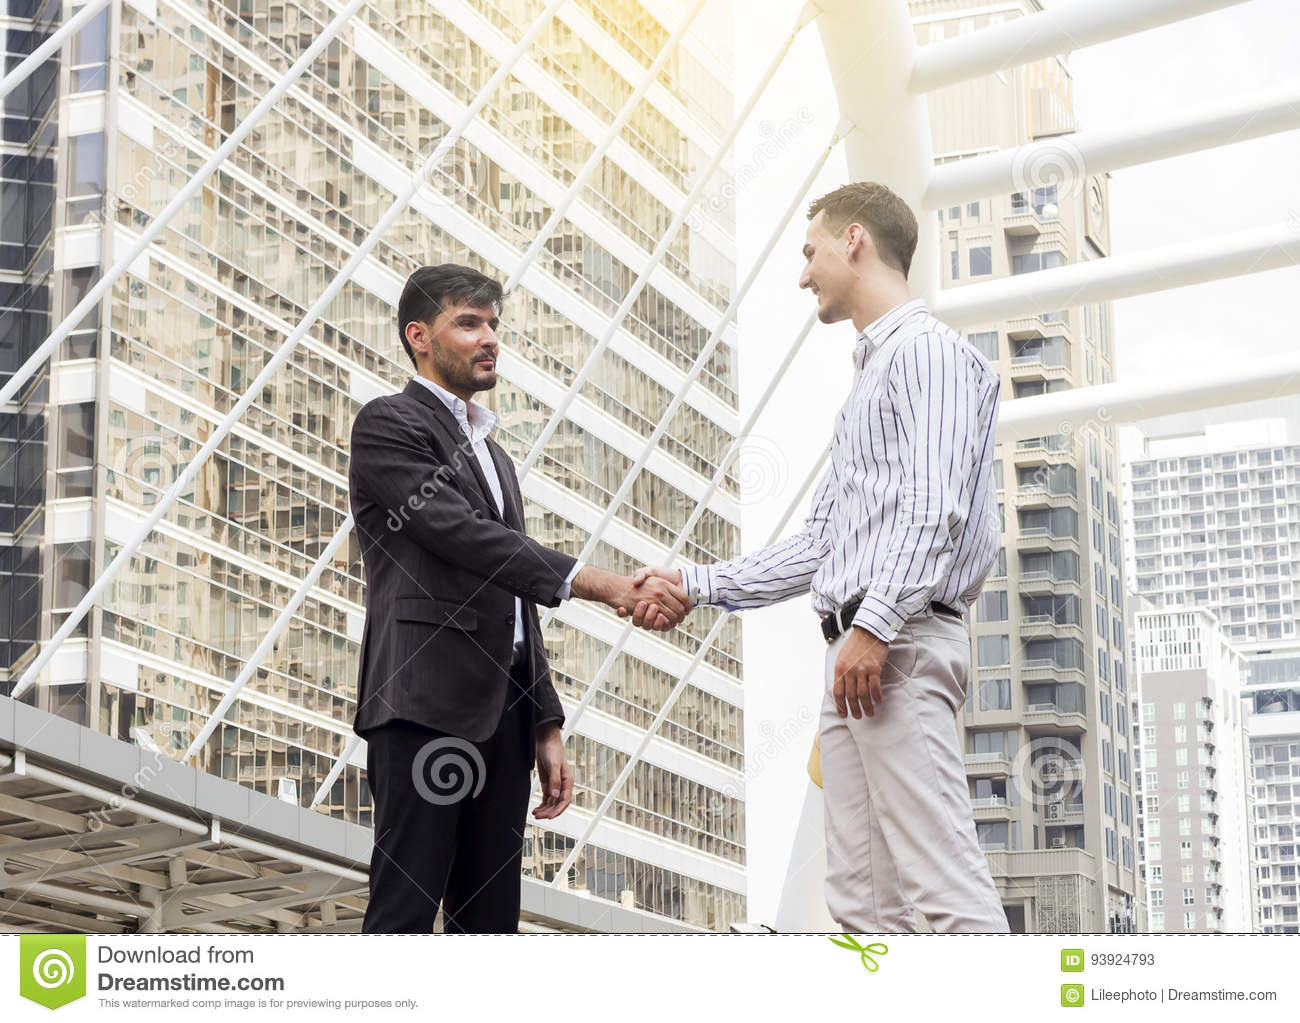 Two smiling businessmen shaking hands together.